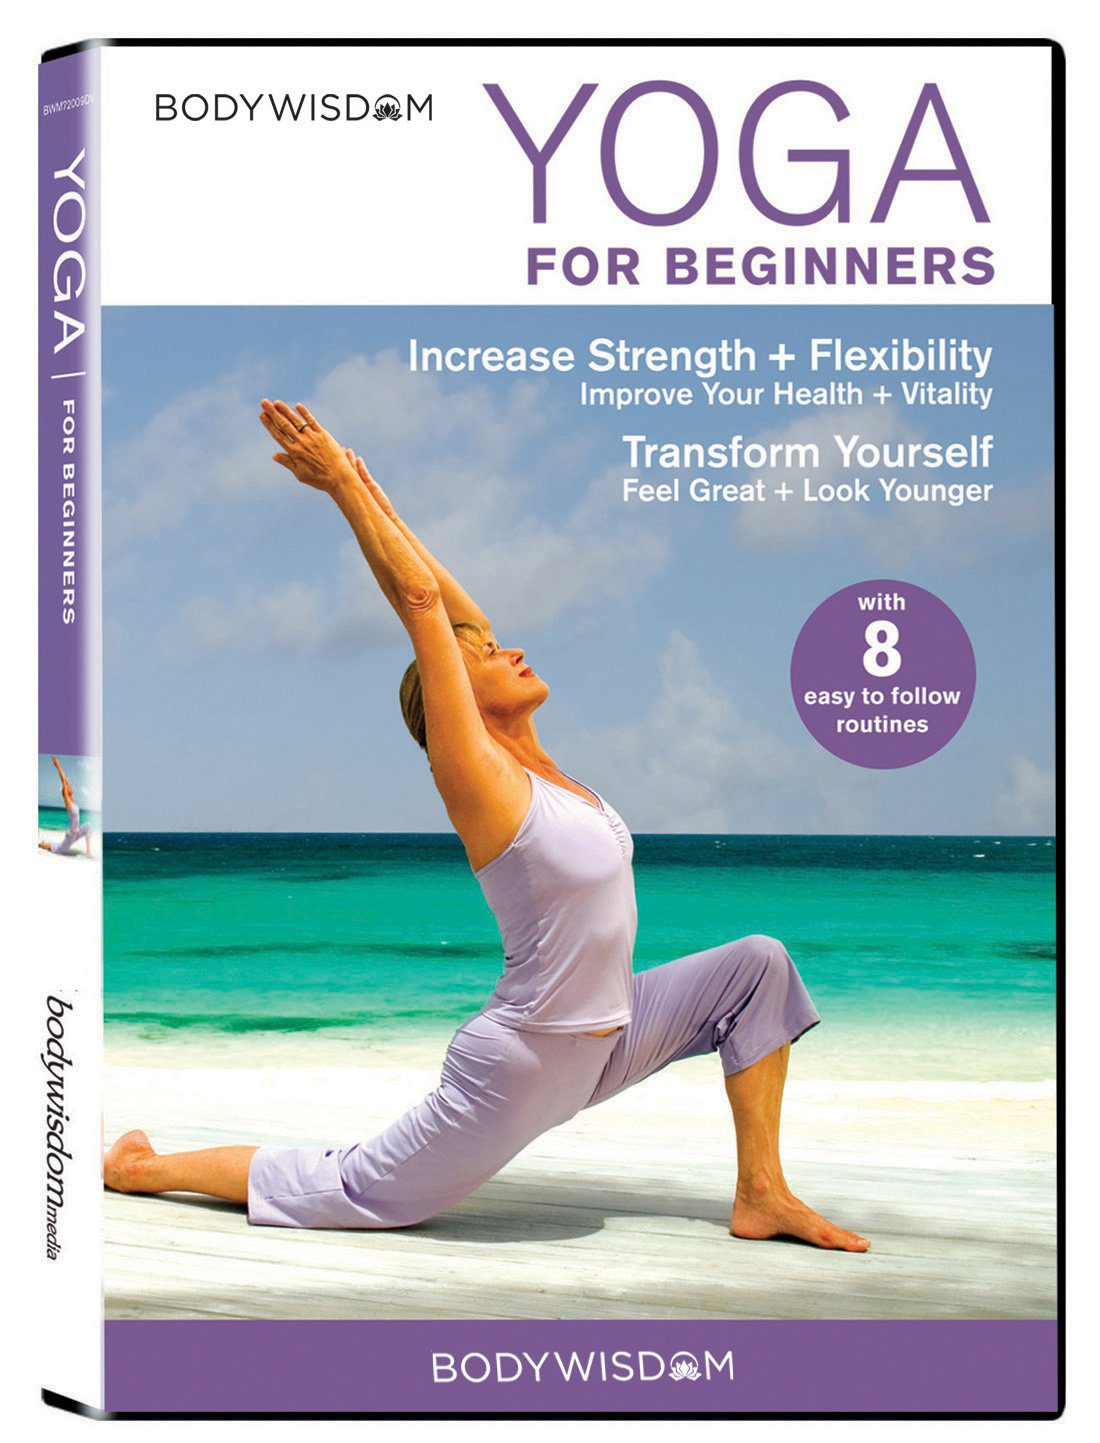 Yoga for Beginners 8 Yoga Video Routines for Beginners | Best Yoga for Beginners DVDs